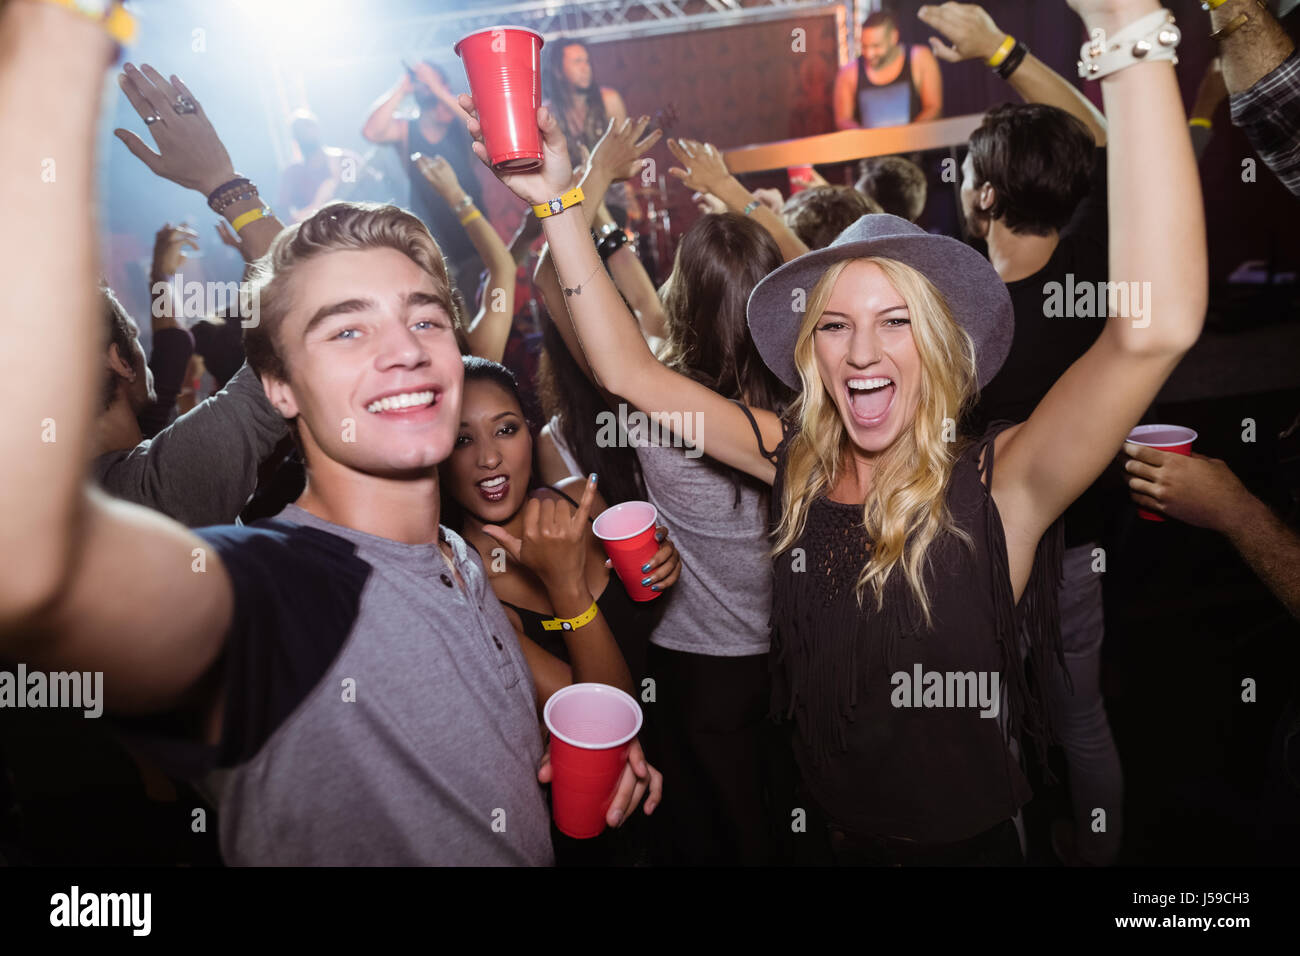 Portrait of friends with disposable cups dancing in nightclub - Stock Image